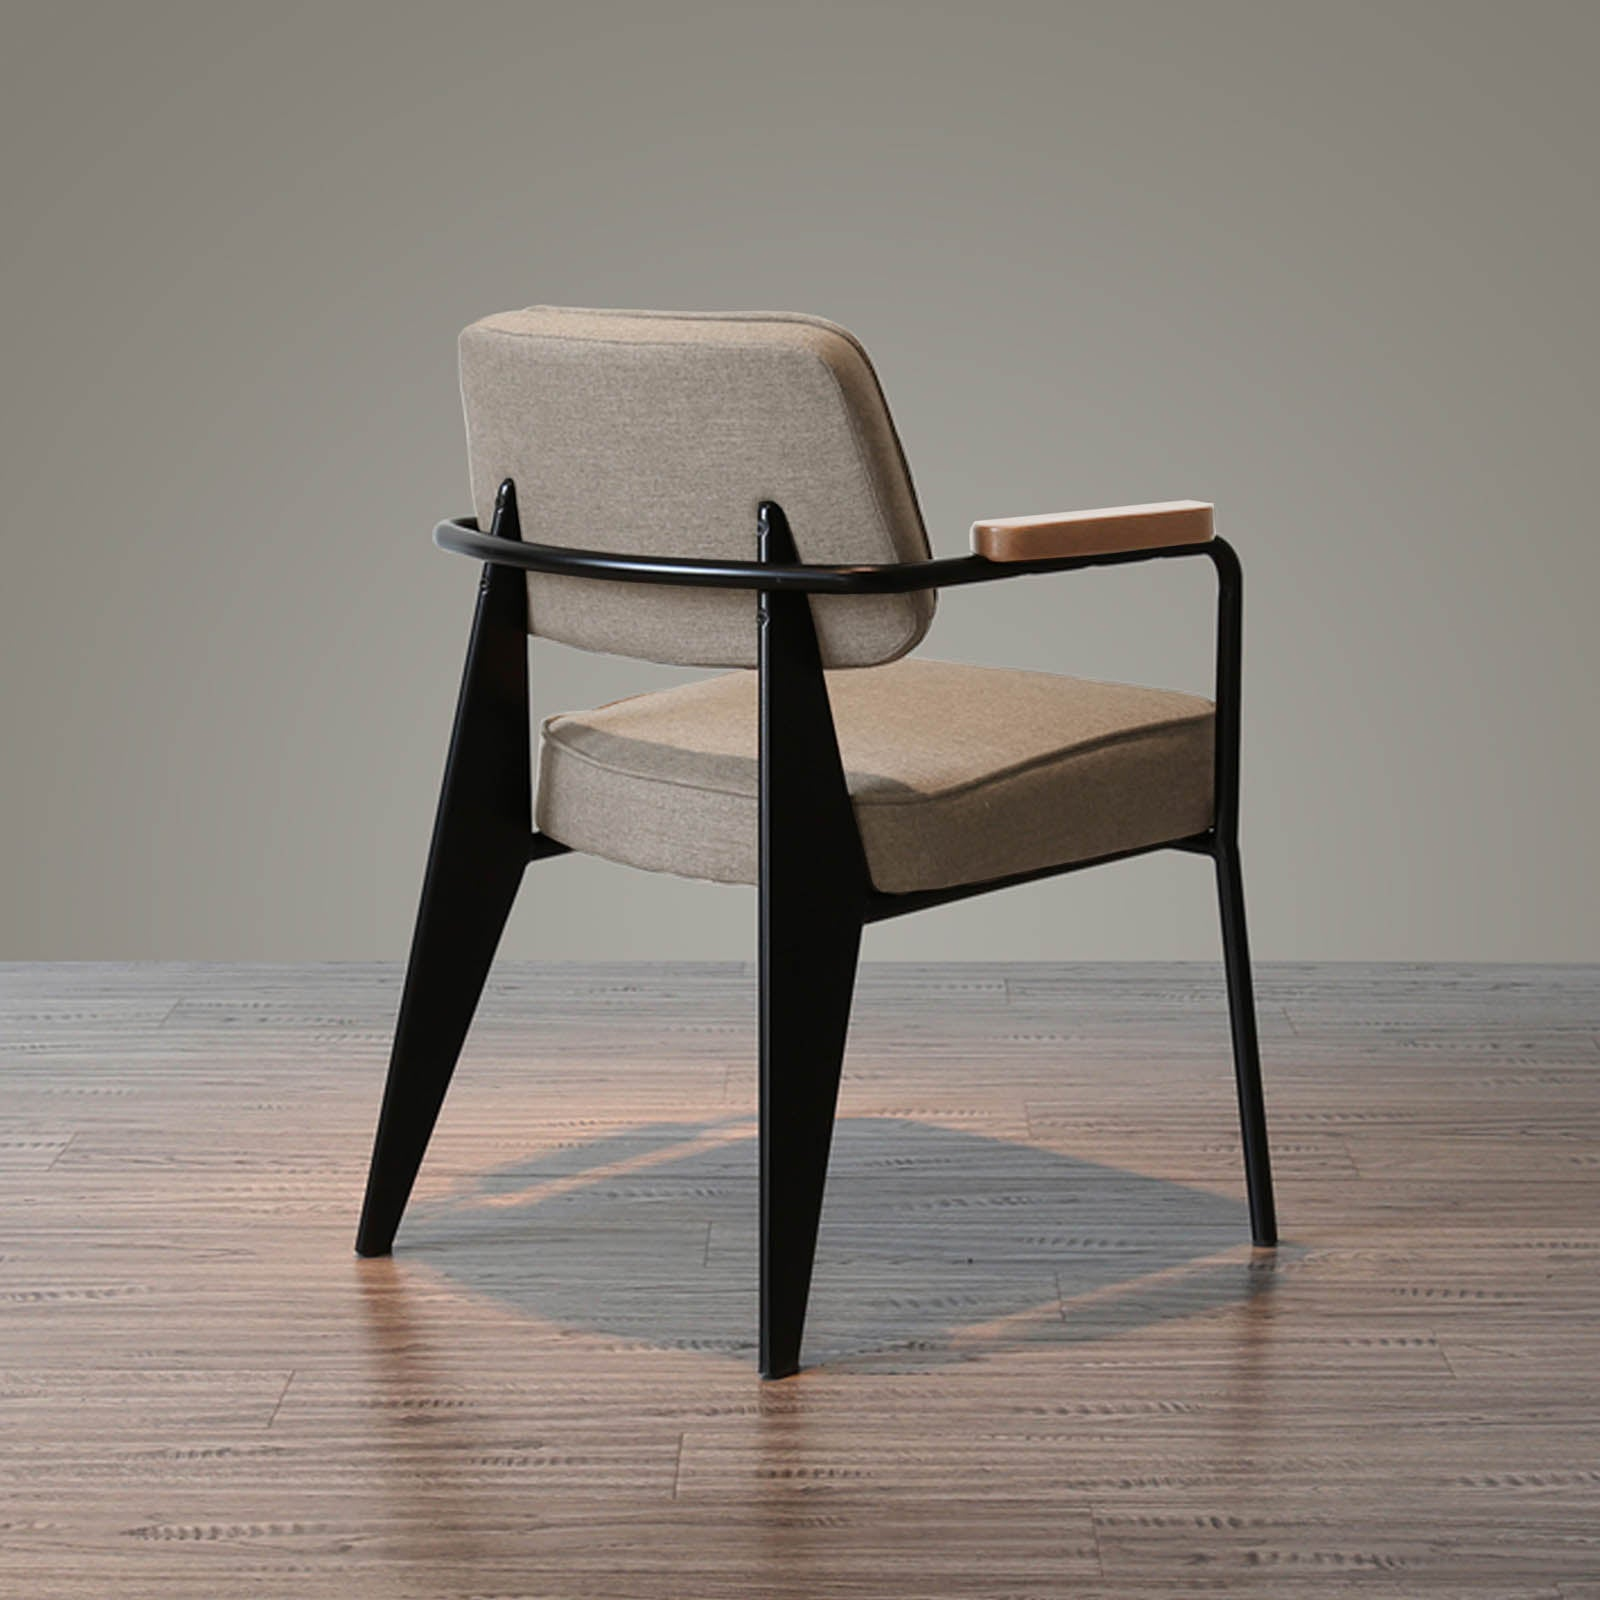 Retro Dining Chair  WS-005VC-BN -  كرسي طعام ريترو - Shop Online Furniture and Home Decor Store in Dubai, UAE at ebarza